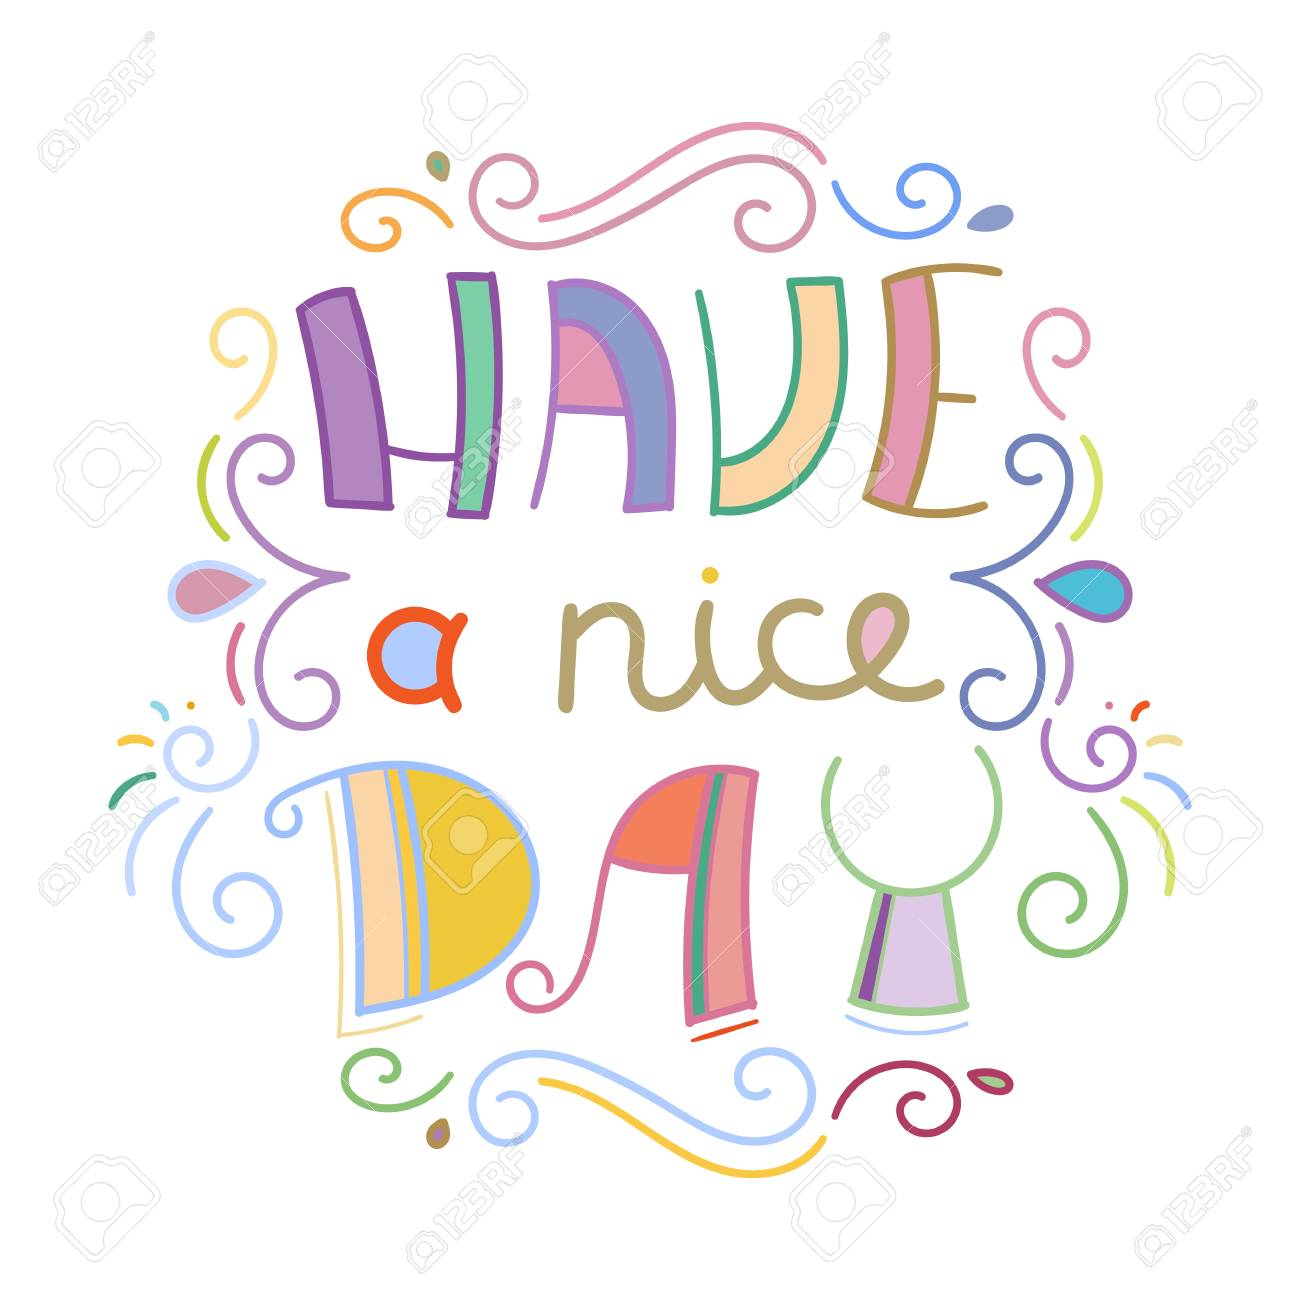 Have a nice day. Colorful lettering phrase isolated on white background. Design element for print, t-shirt, poster, card, banner. Vector illustration - 103840393